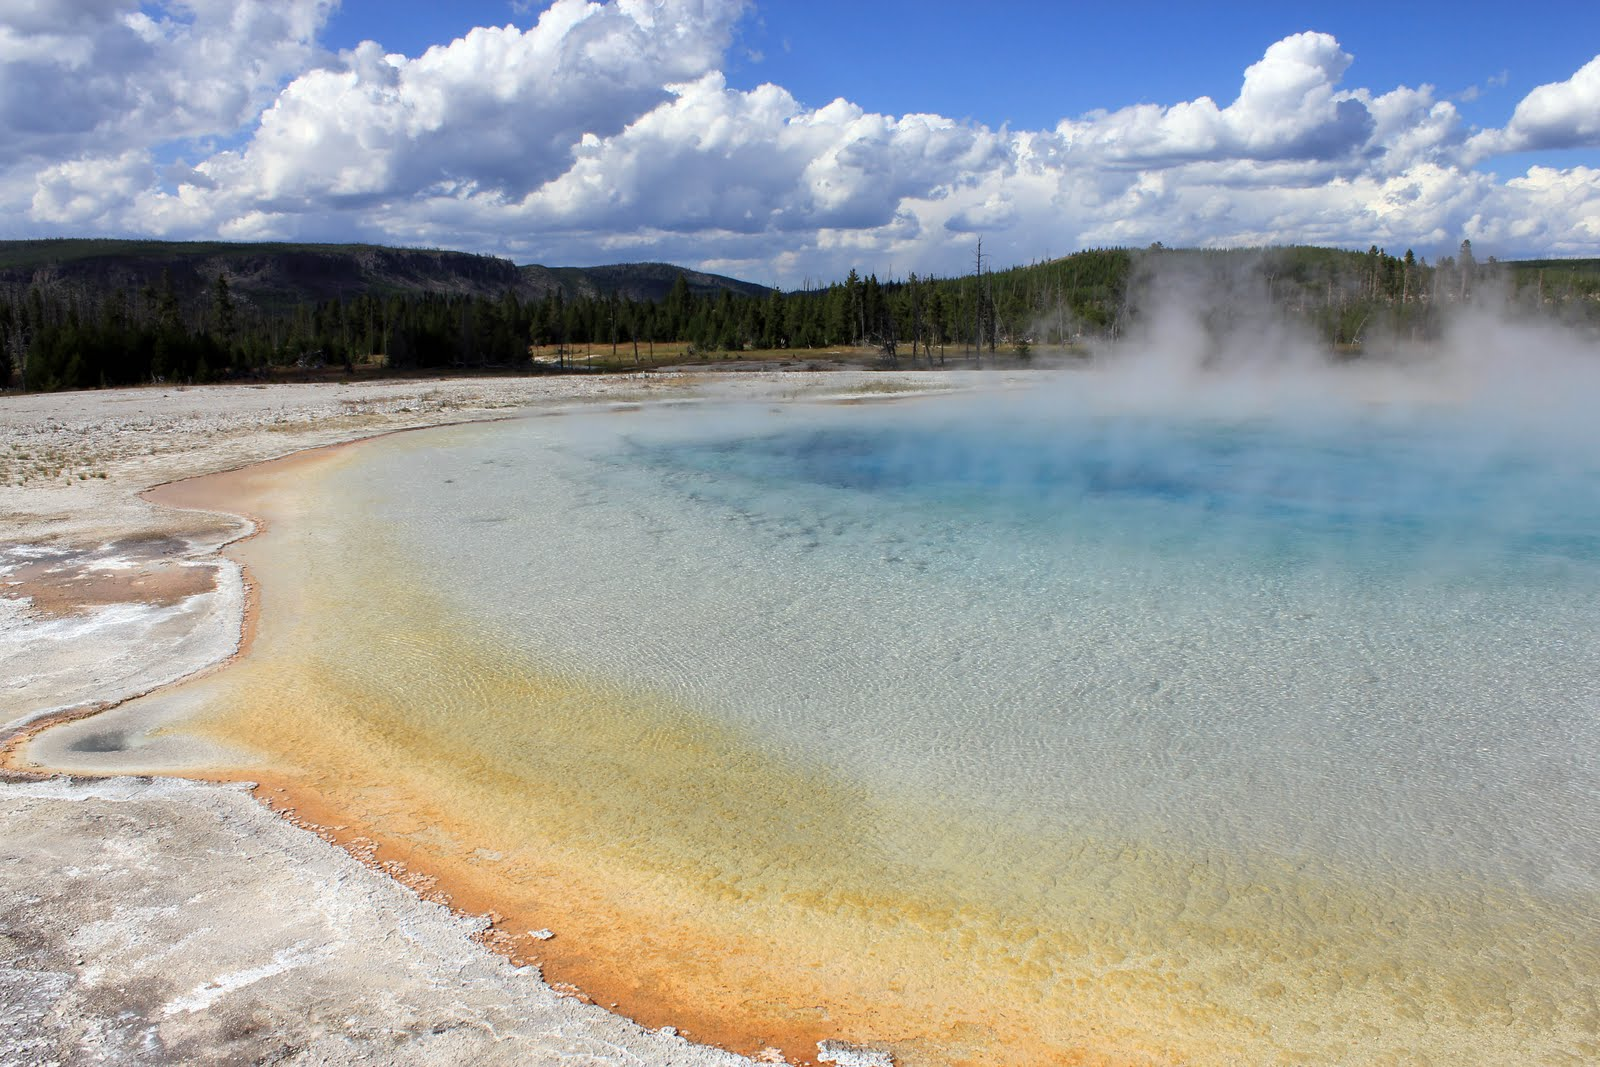 2011 – Le parc national Yellowstone (Wyoming)